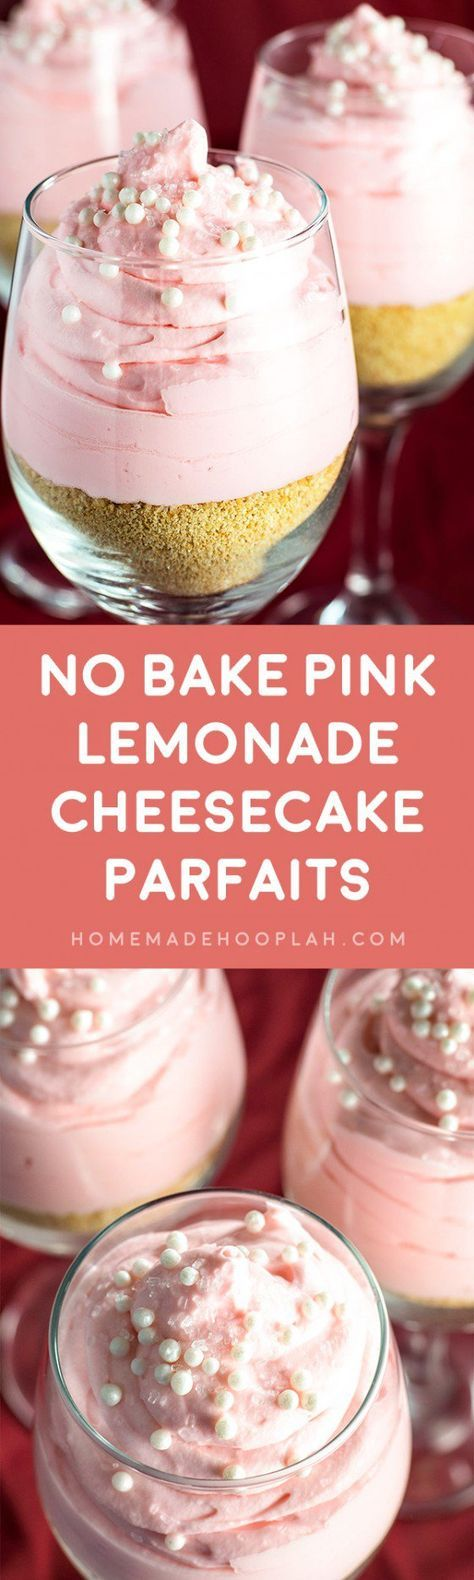 No Bake Pink Lemonade Cheesecake Parfaits! Single serve cheesecake parfaits with a hint of pink lemonade flavor. | HomemadeHooplah.com